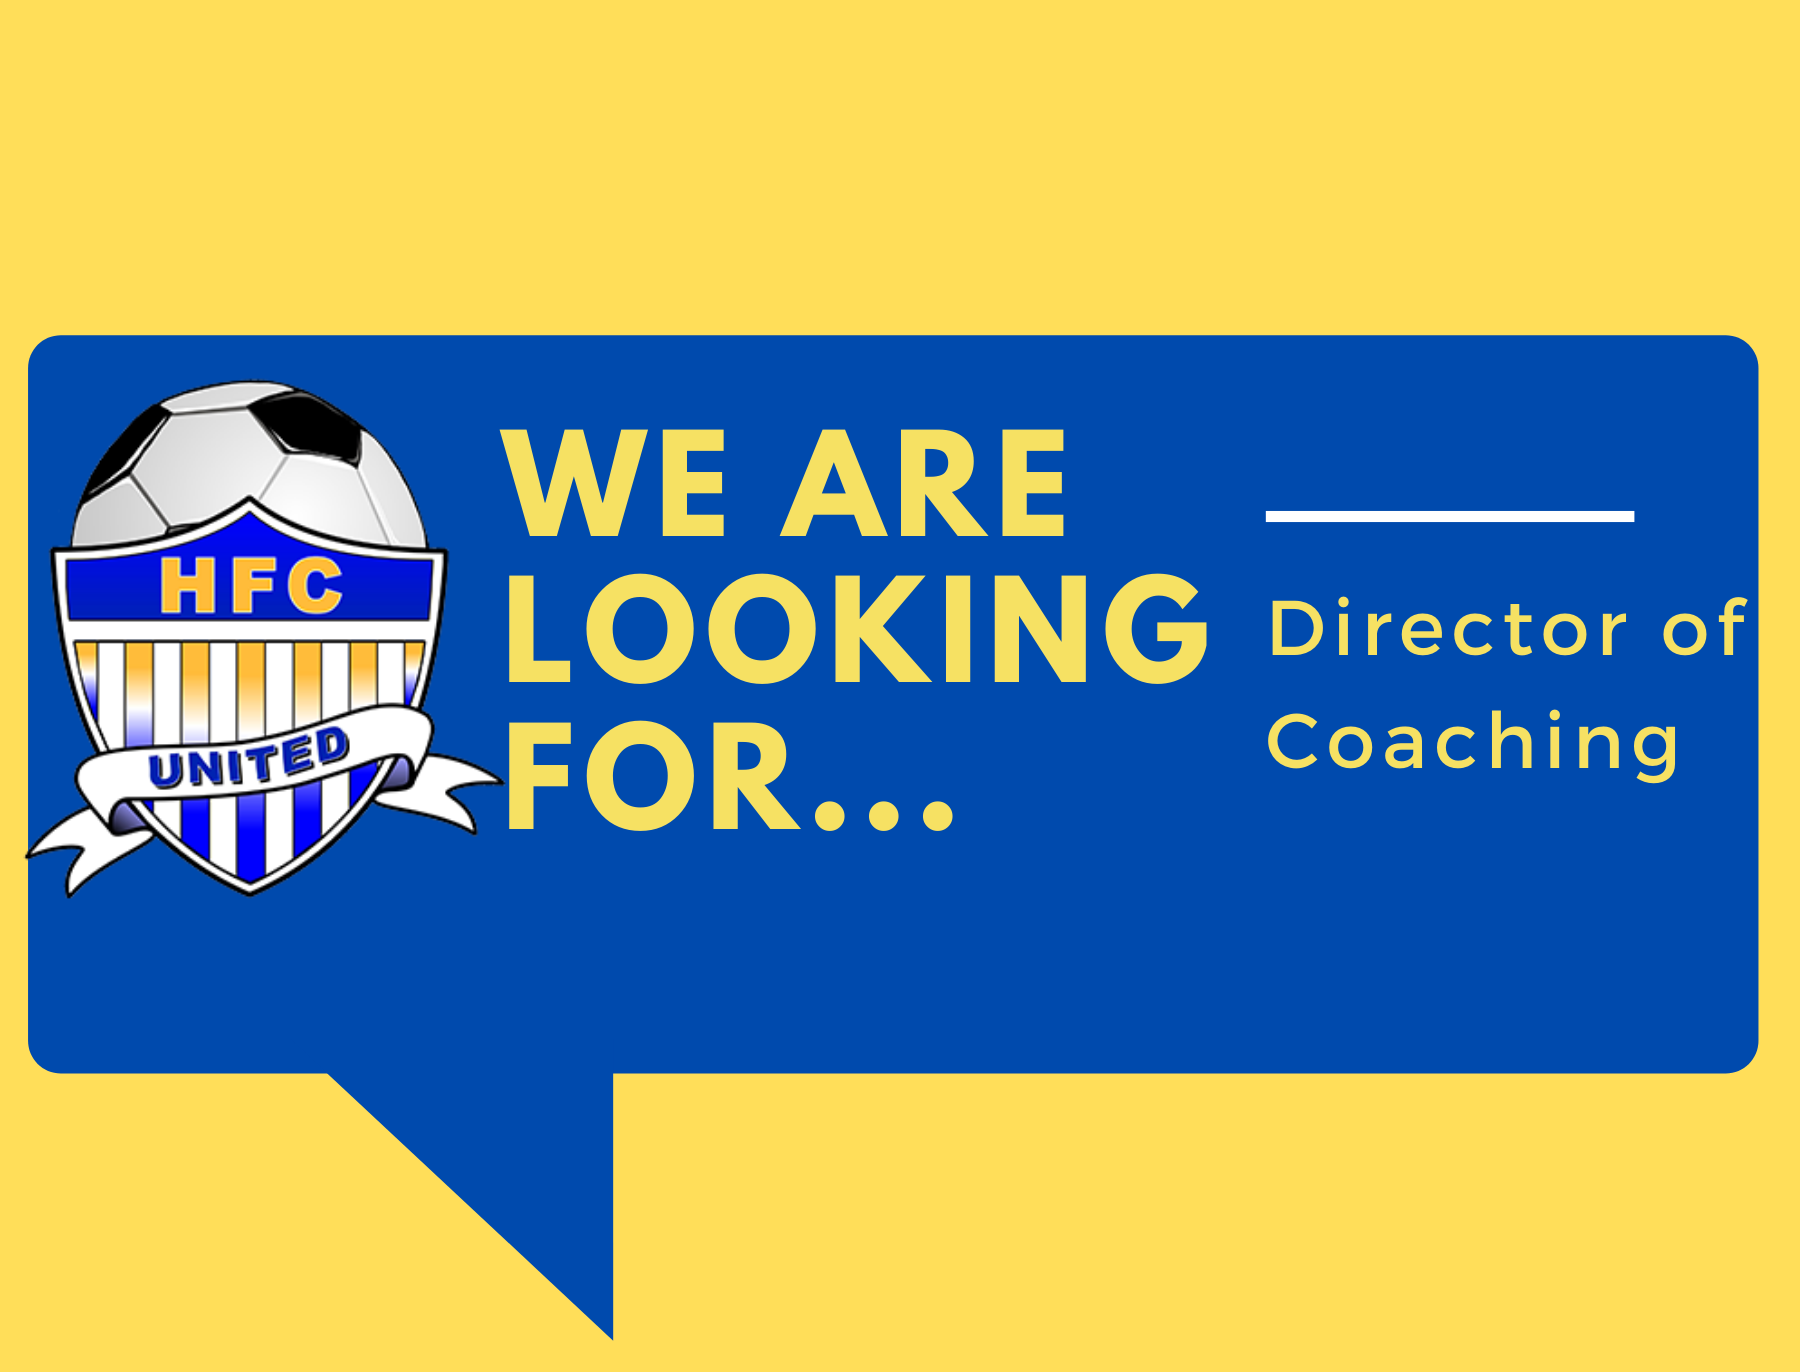 Employment Opportunity- Director of Coaching